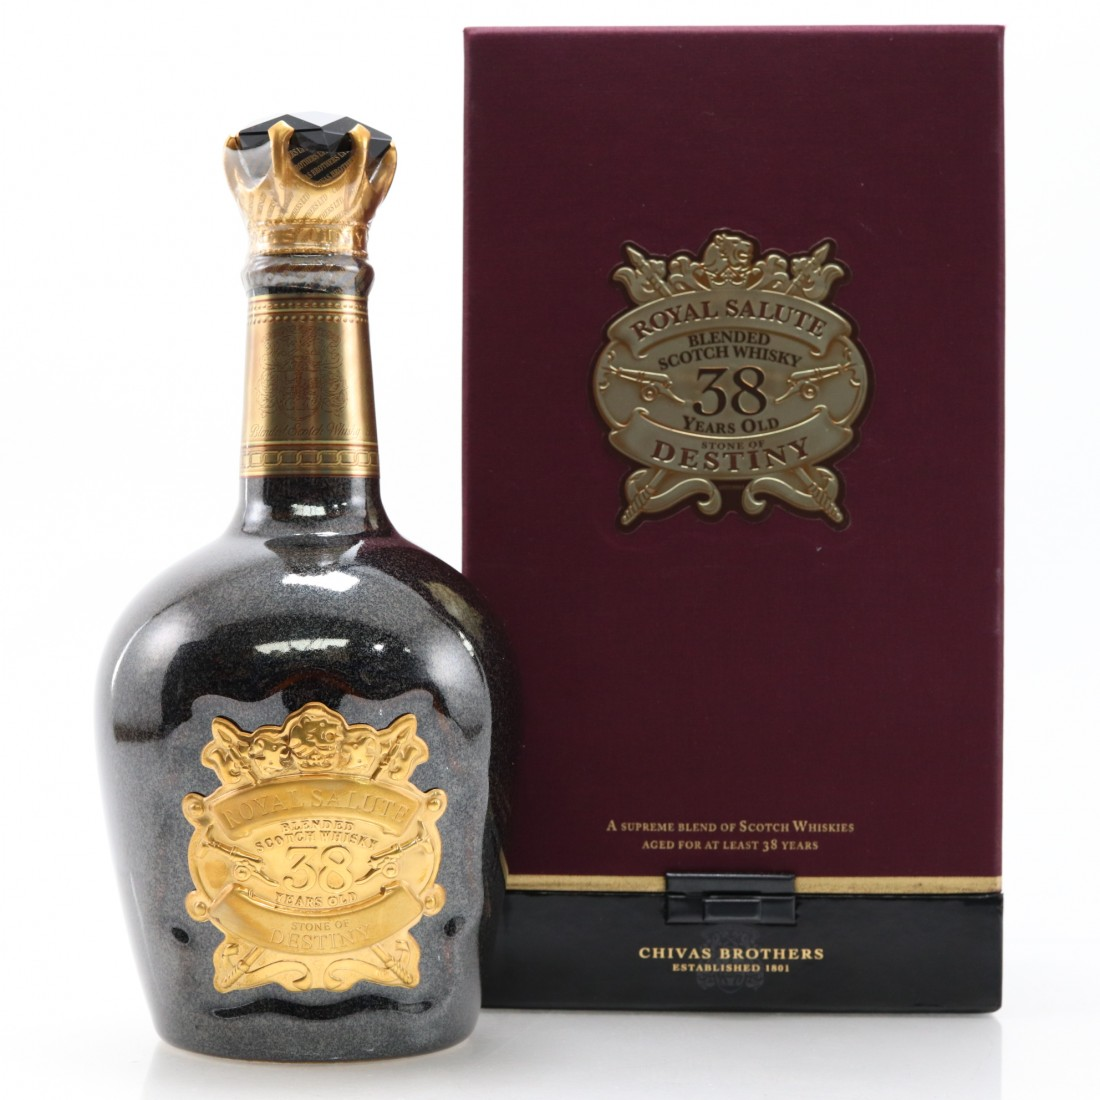 Chivas 38 years old